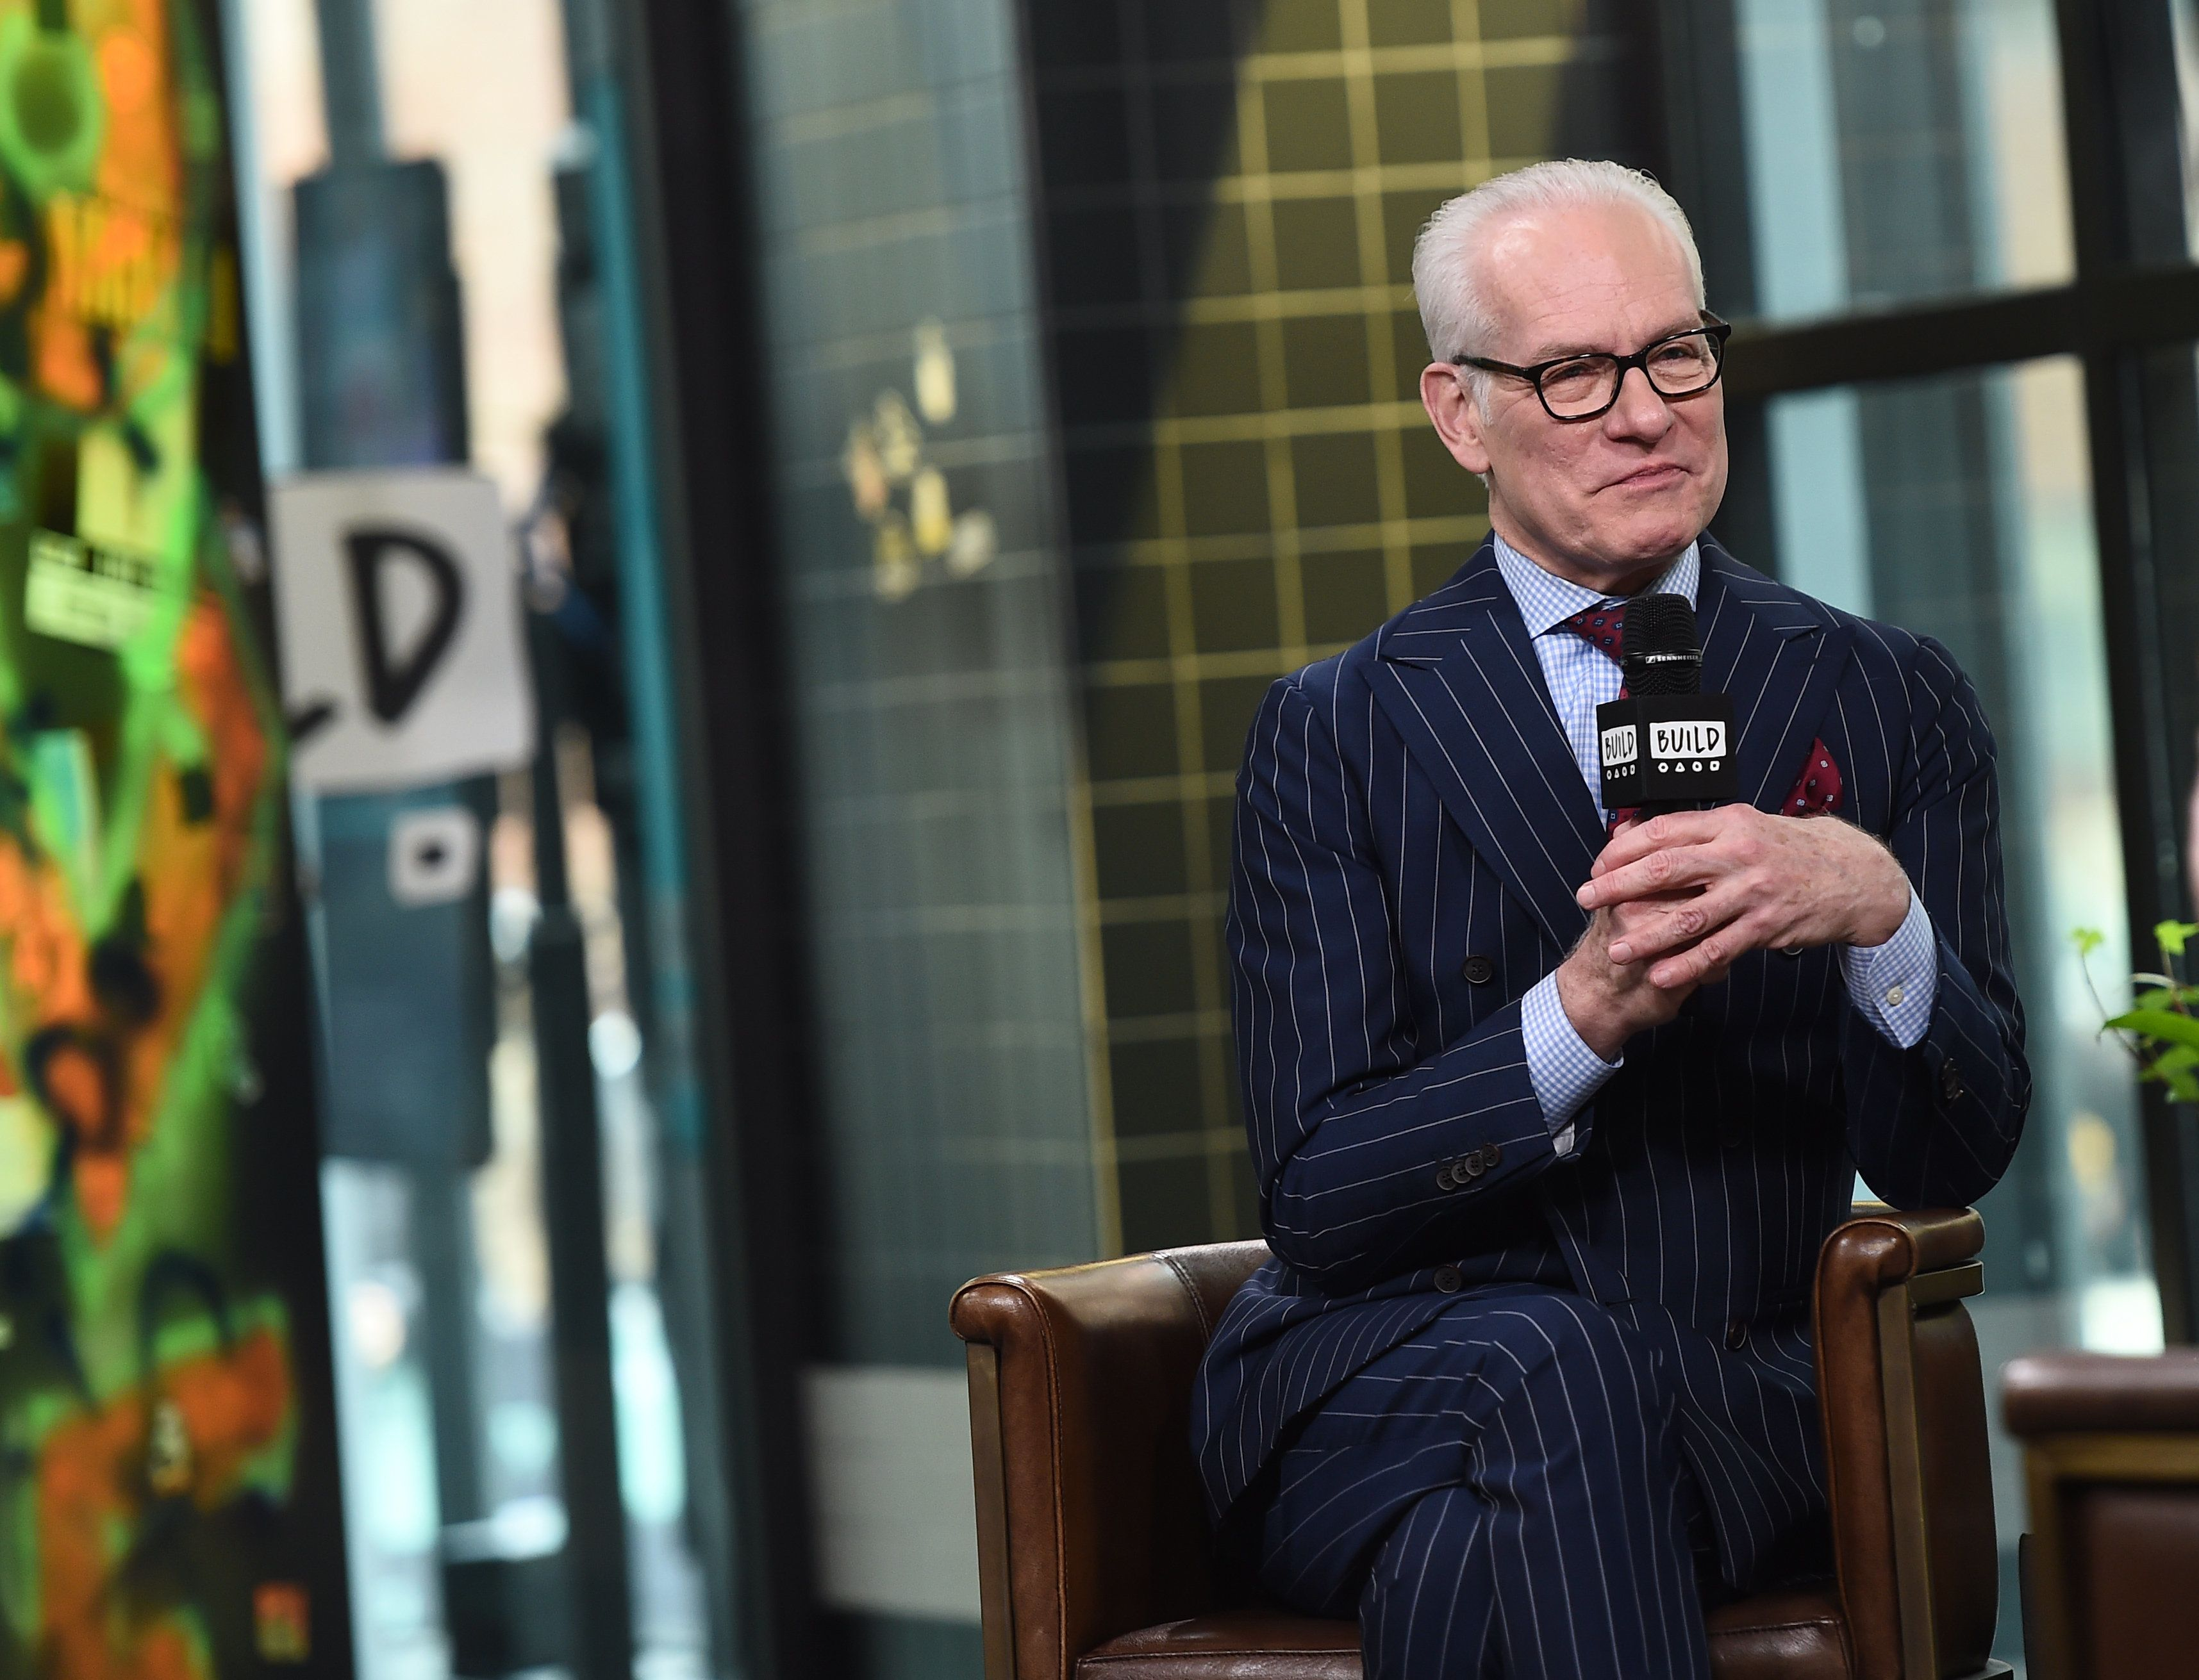 NEW YORK, NY - APRIL 12:  Fashion personality Tim Gunn visits Build studios to discuss his partnership with Command Brand at Build Studio on April 12, 2018 in New York City.  (Photo by Ilya S. Savenok/Getty Images)